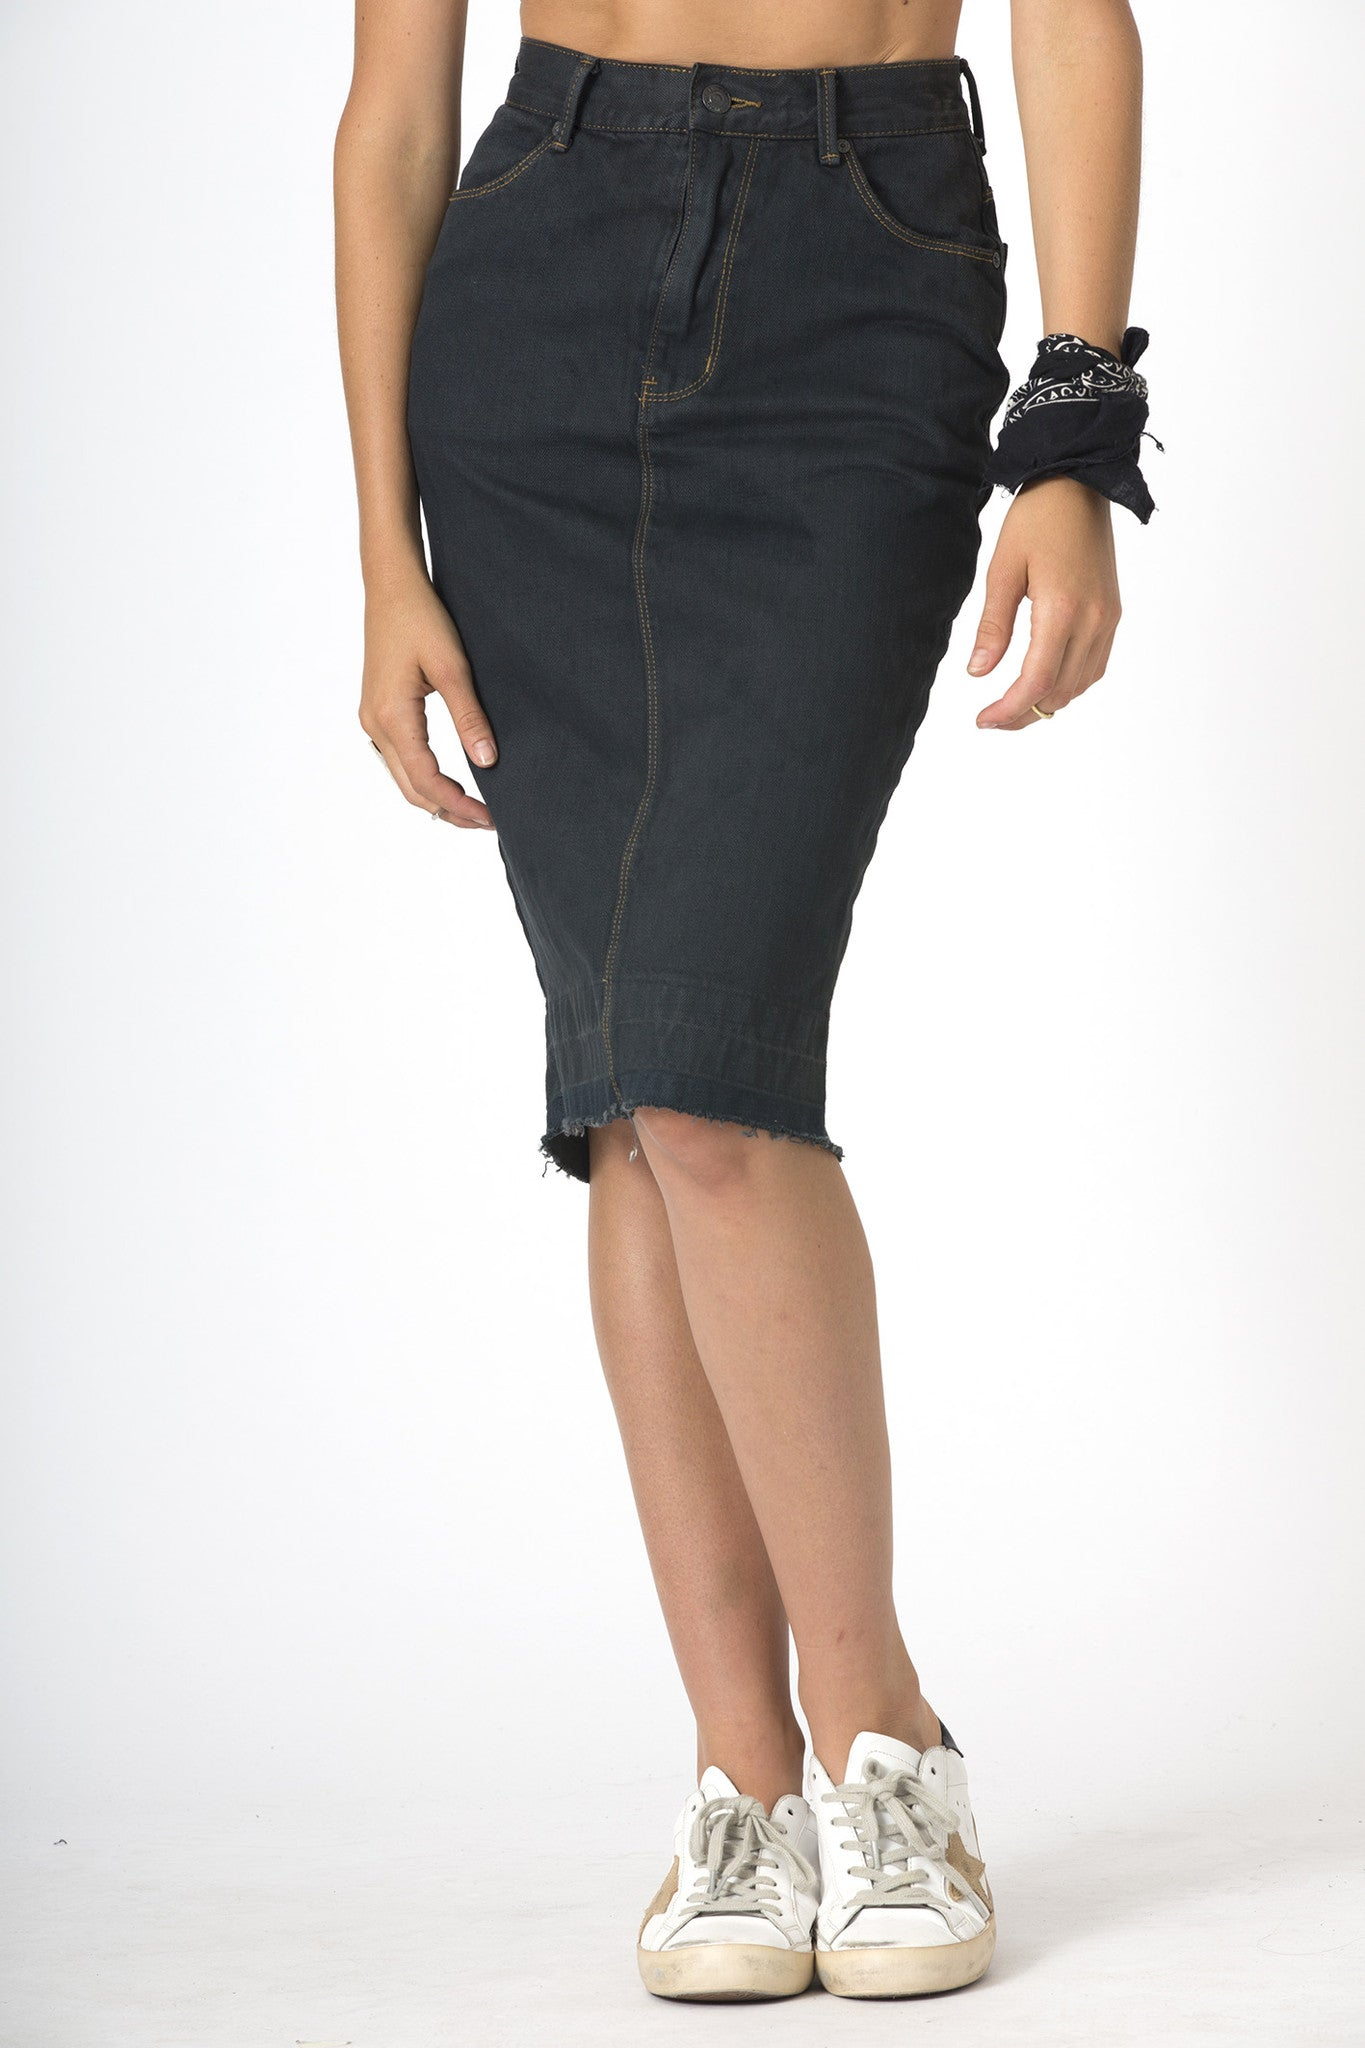 #3E15 High Midi Skirt Carbon Black - denimcolab